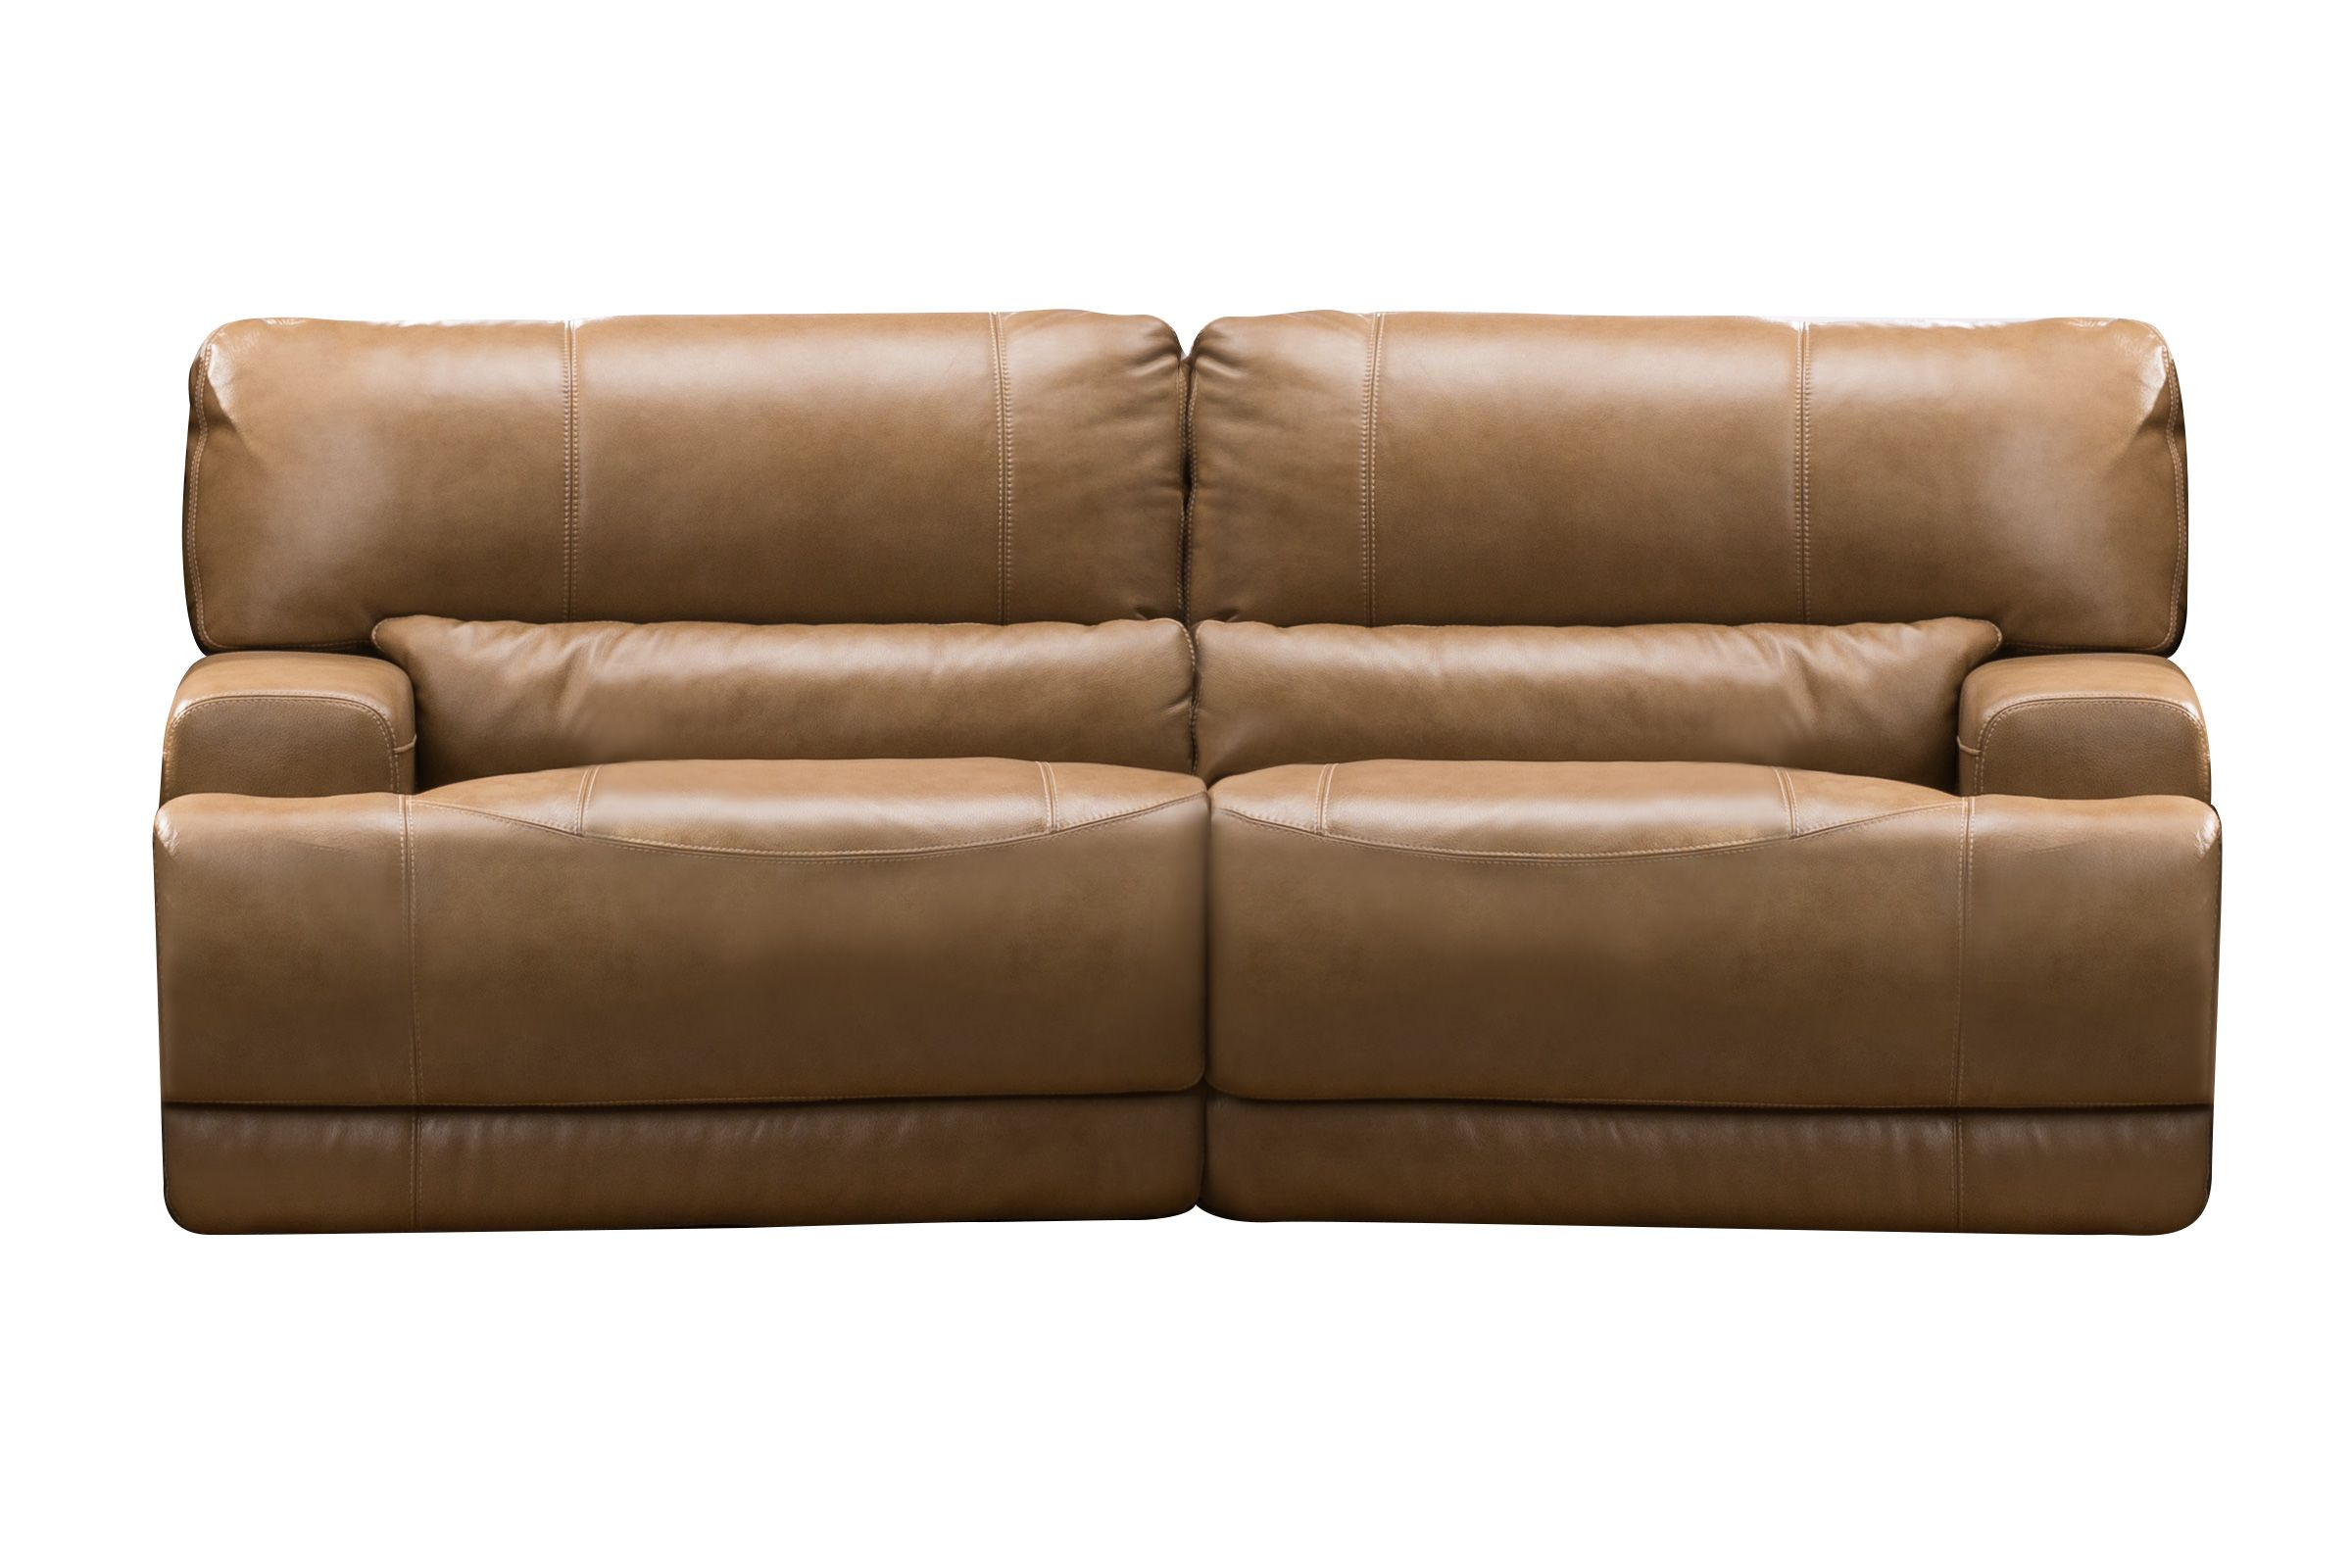 Featured Steal Hamlin Power Reclining Leather Sofa Now $1,999.99 $1,599.99  + We Pay Your Tax